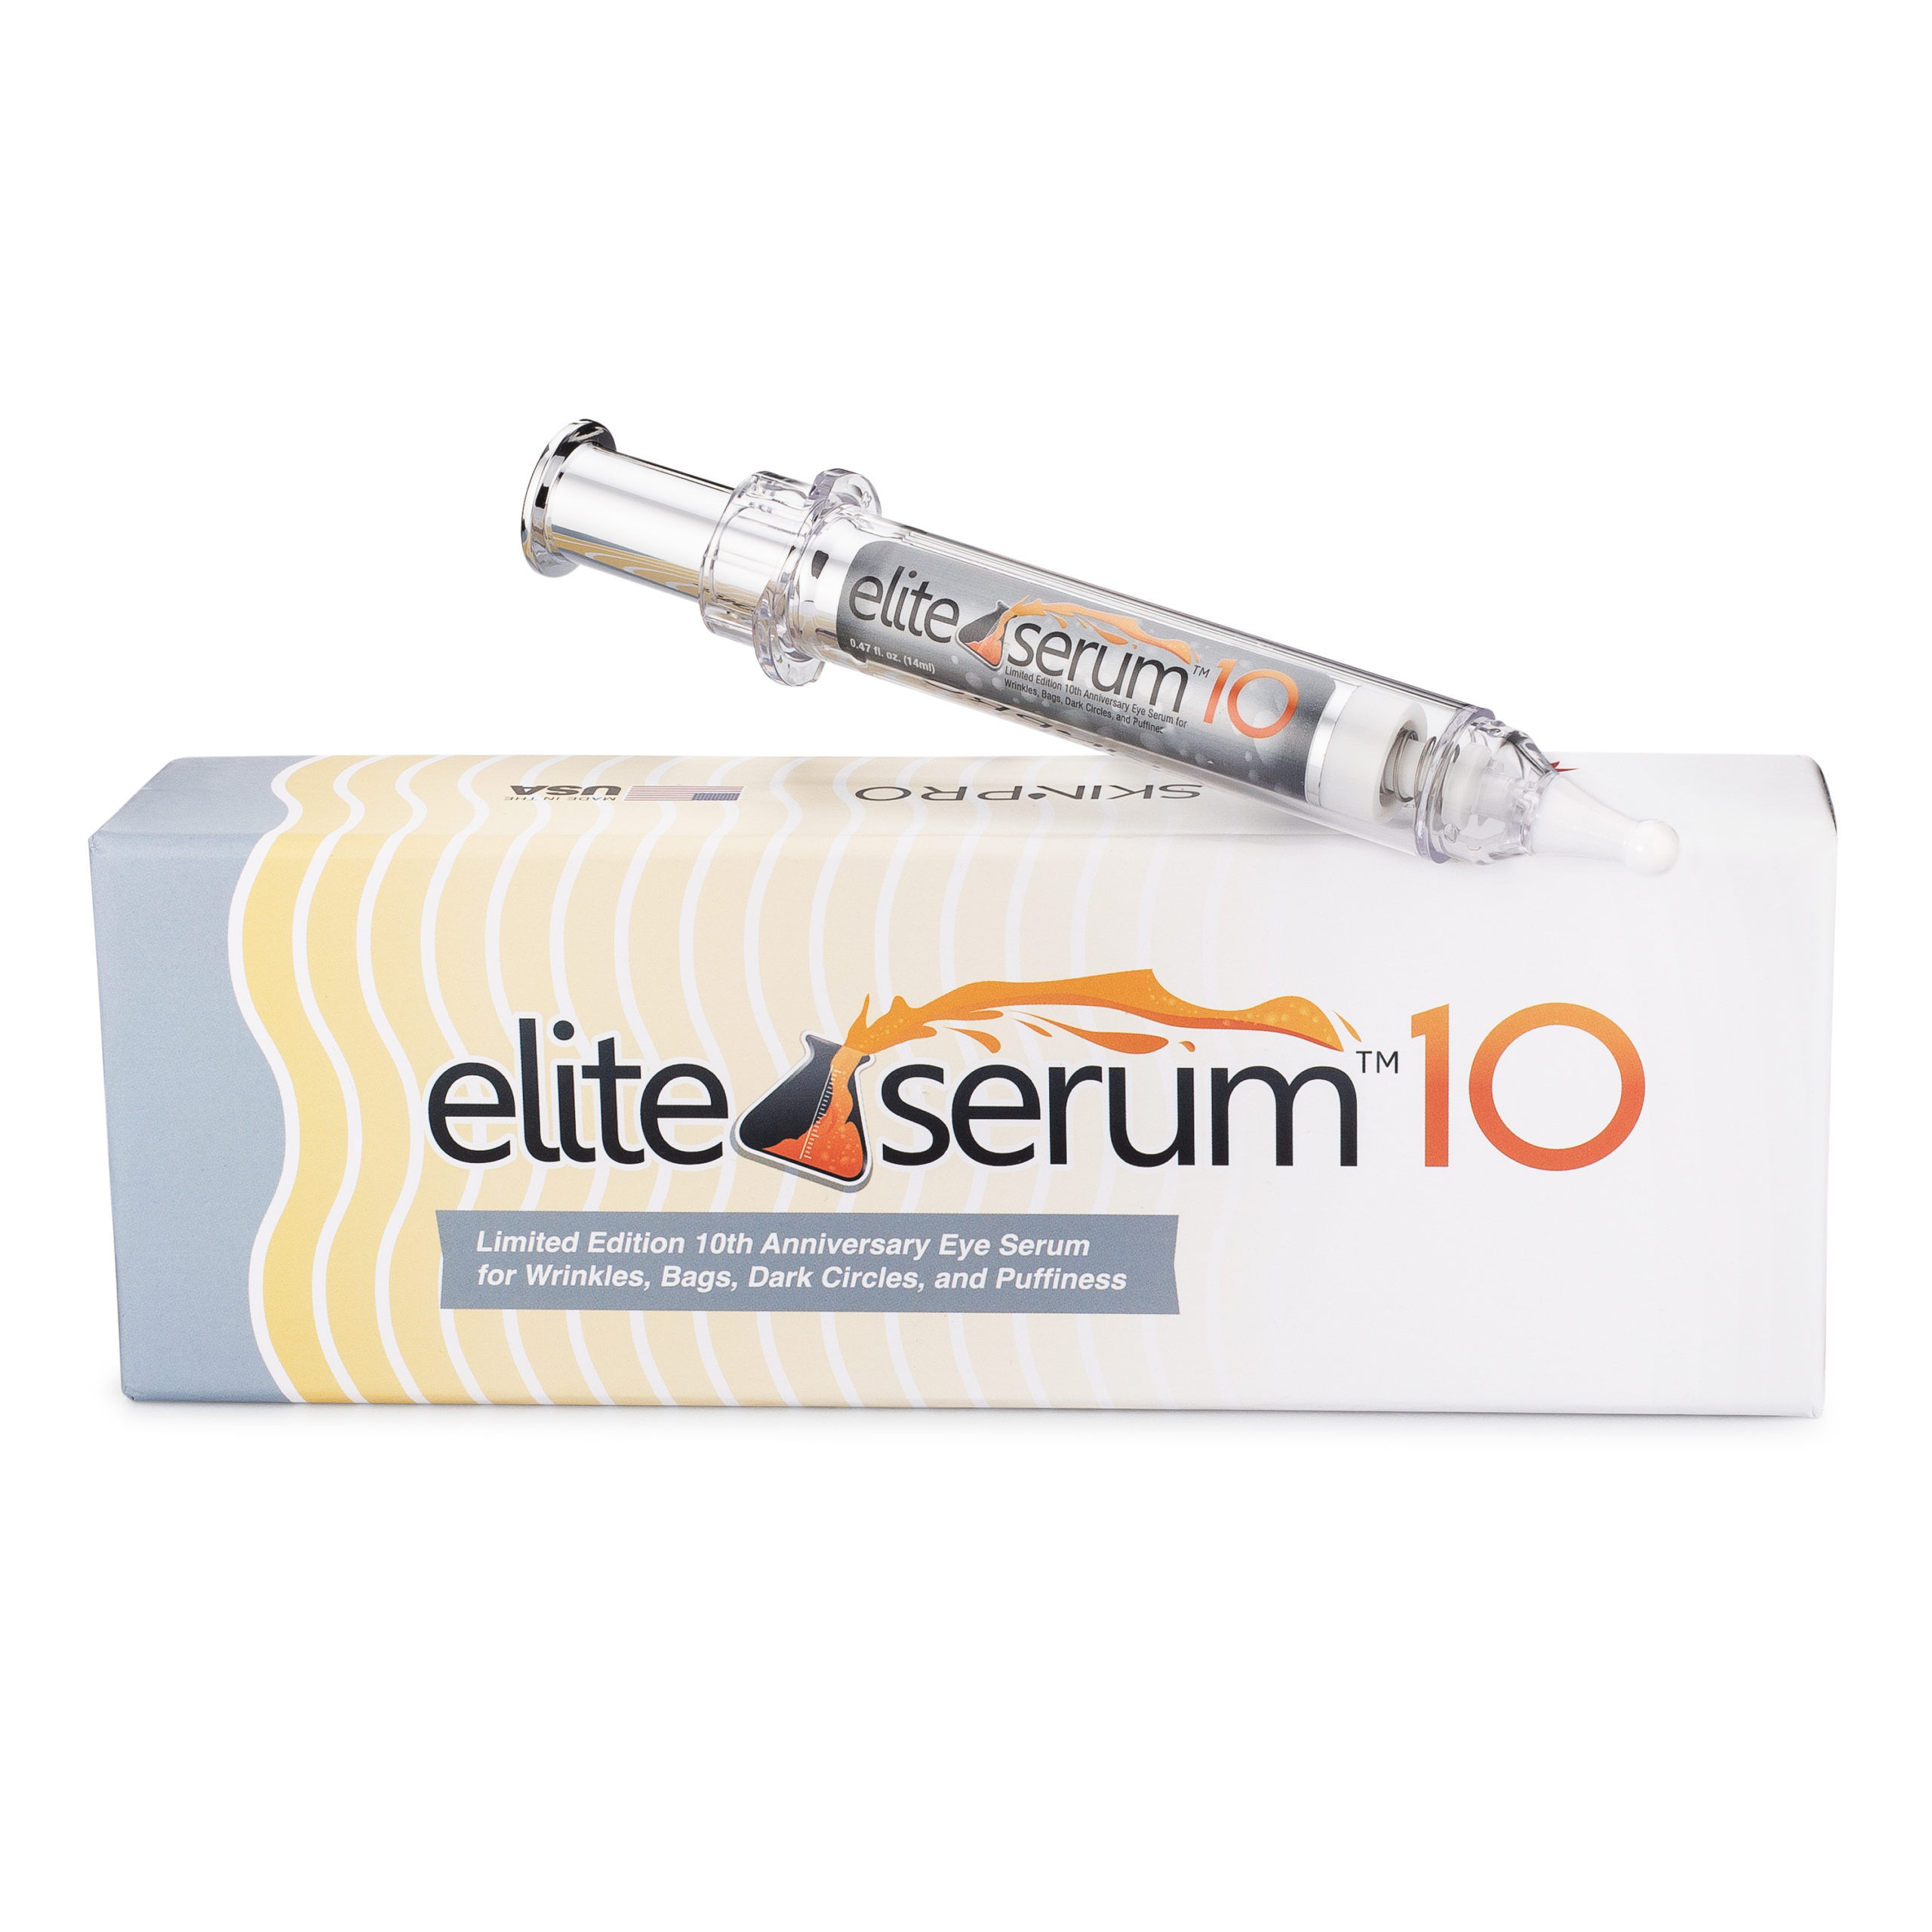 Elite Serum 10 Growth Factor Serum